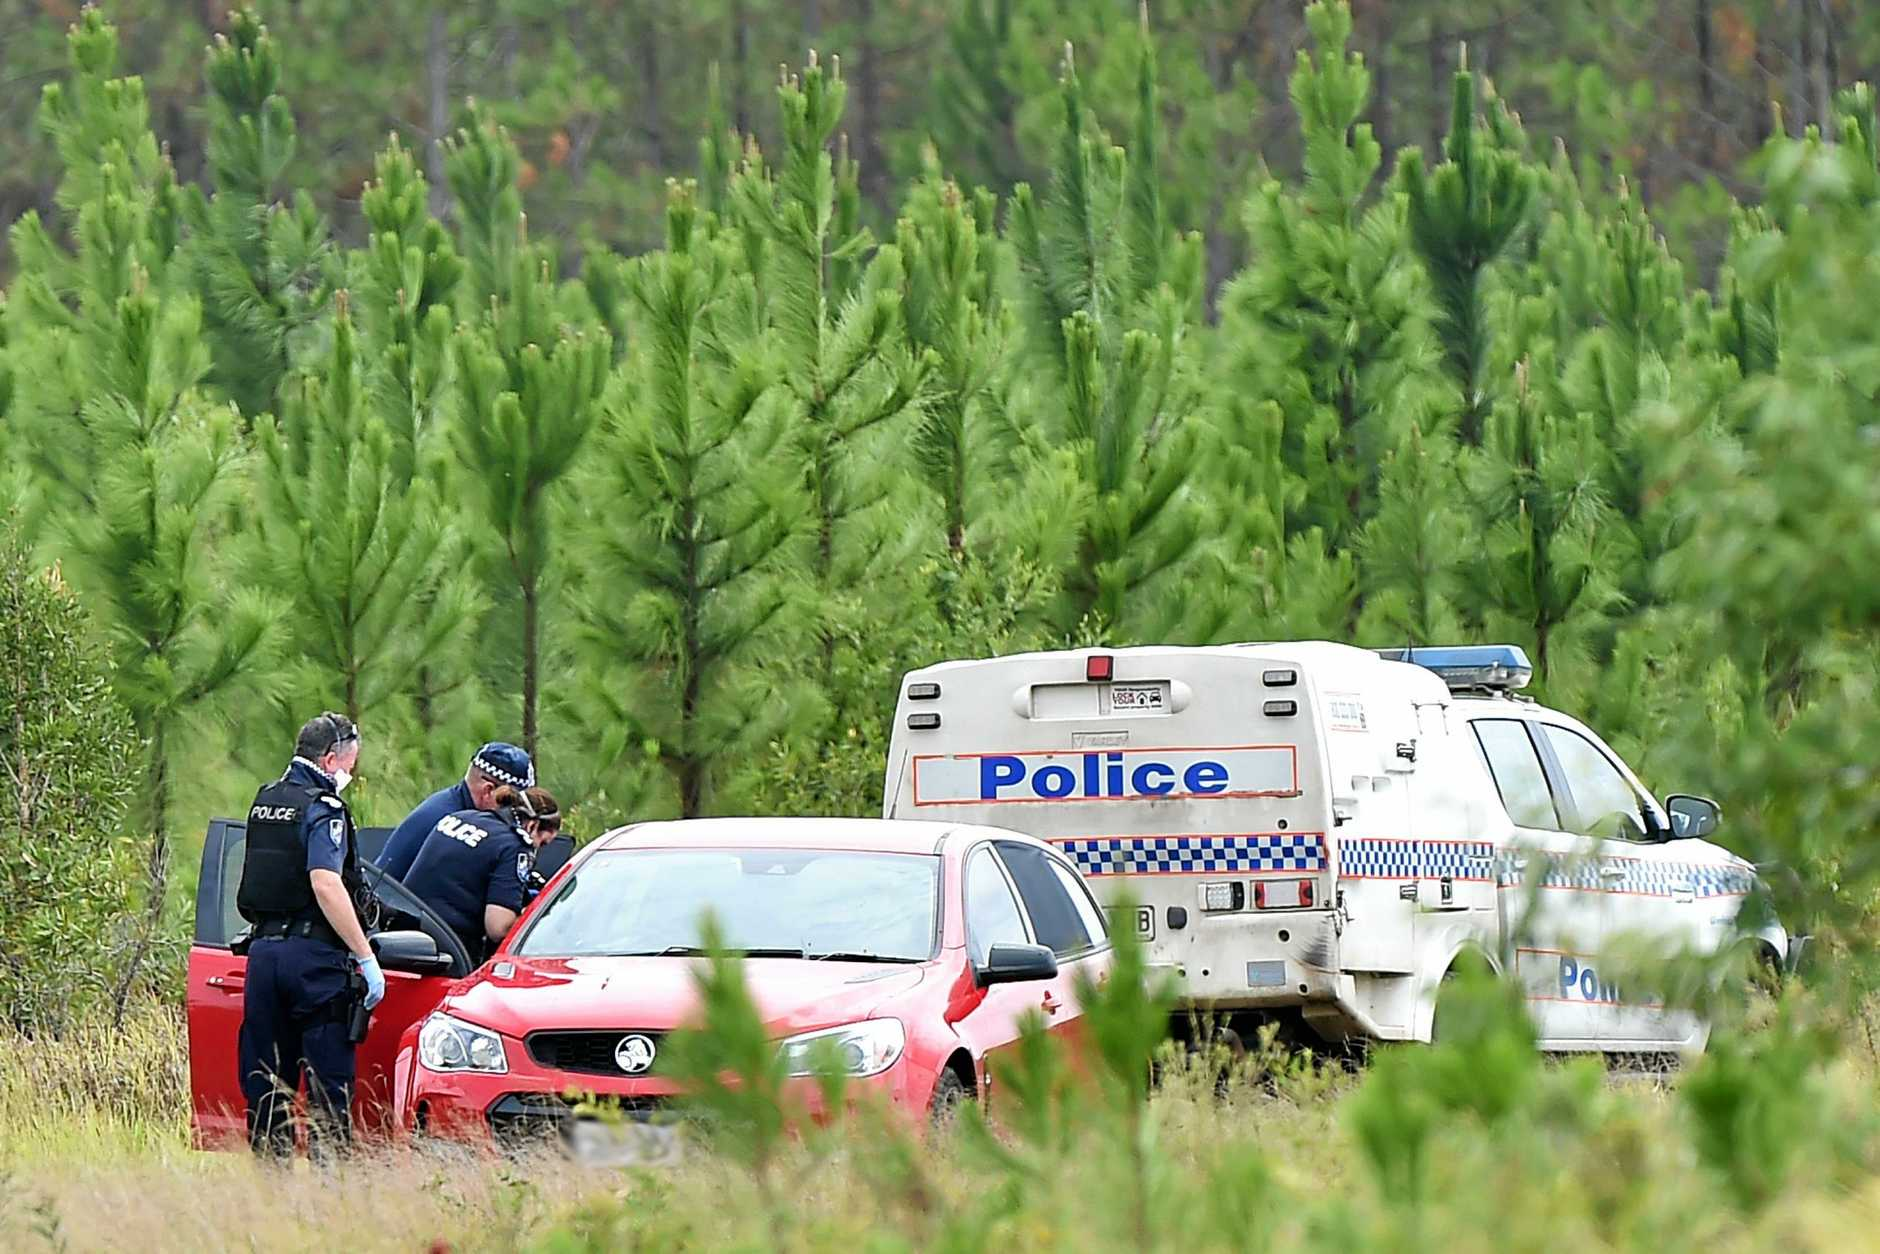 Two bodies have been found in a red car at Roys Road, Coochin.